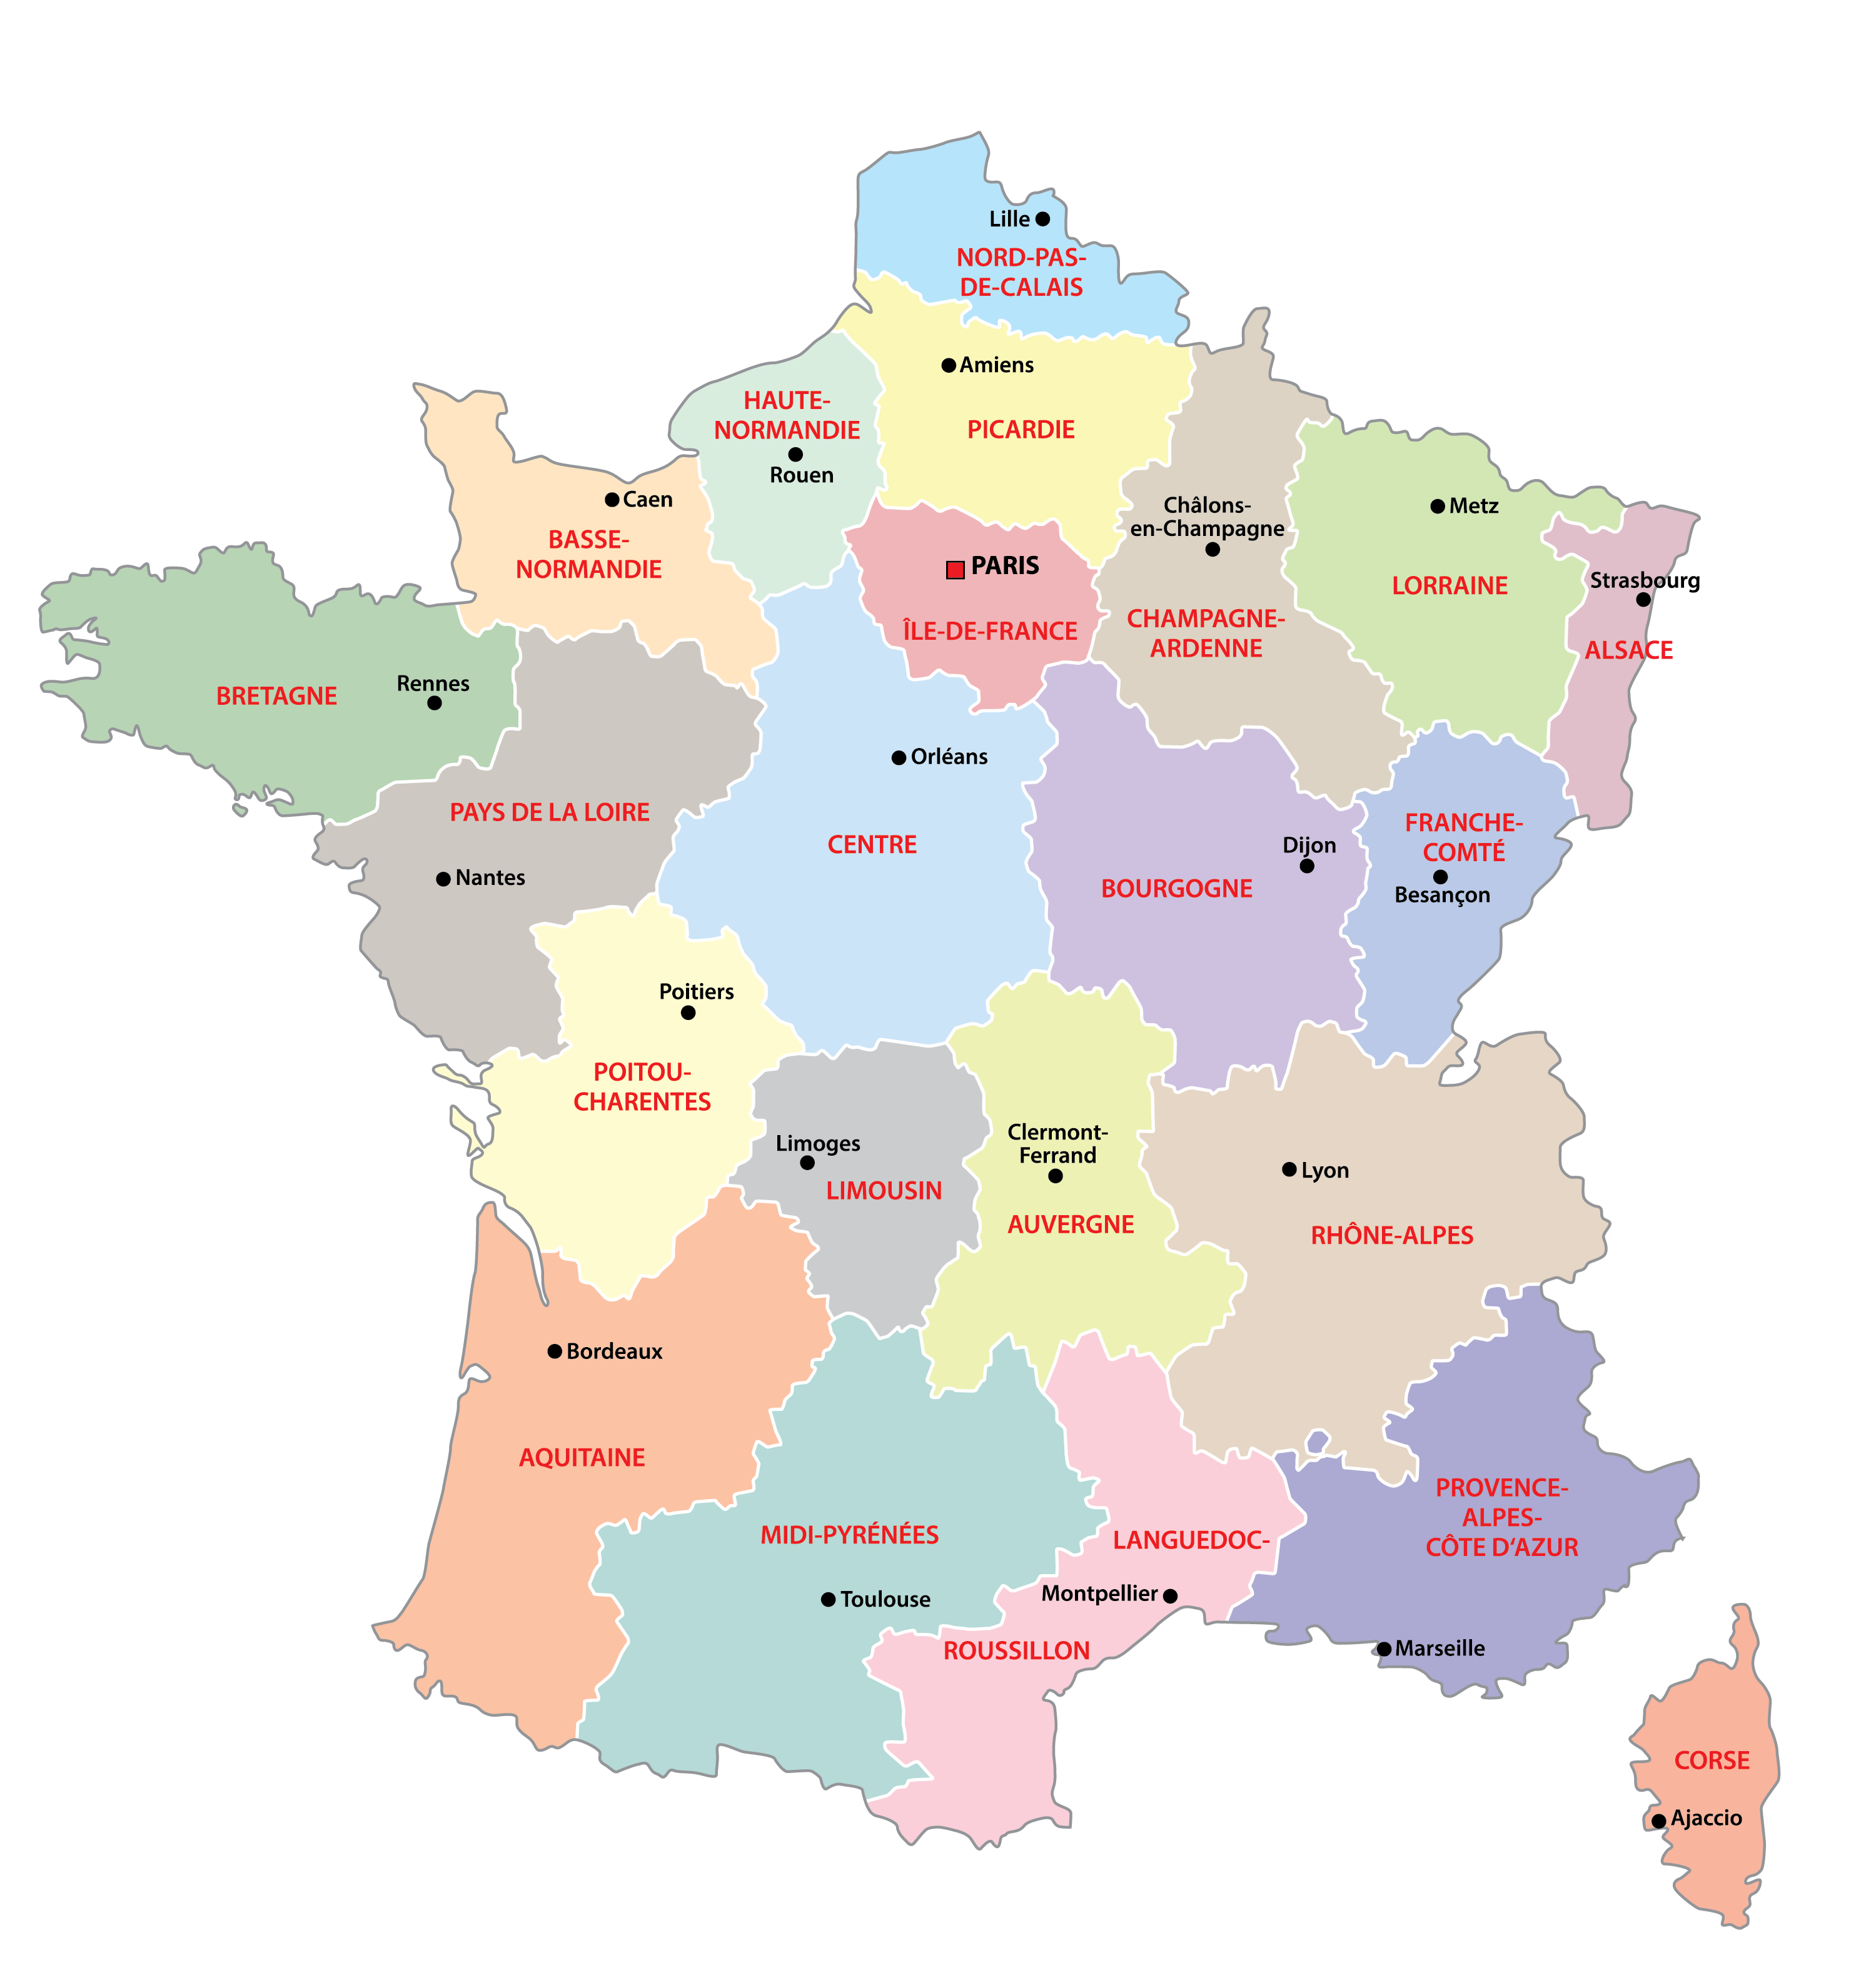 Political Map of France showing its 18 regions and the capital city of Paris.